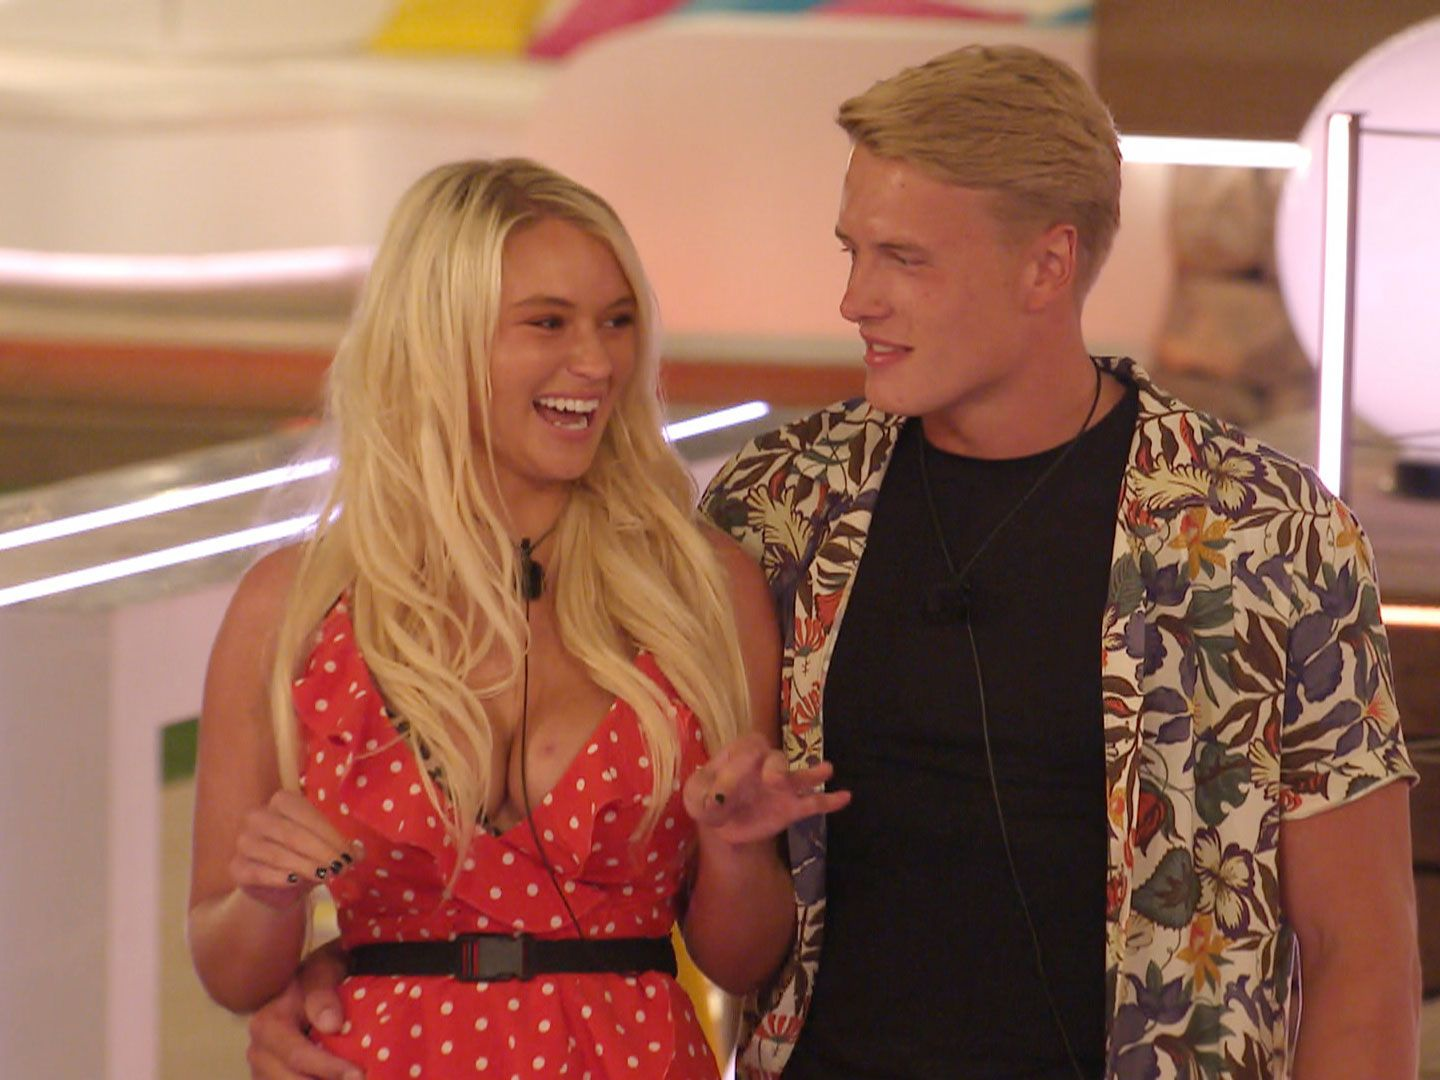 Image may contain: Love Island, Tommy, Molly-Mae, Lucie, George, gossip, news, latest, preview, tonight, sneak peek, gossip, Female, Girl, Teen, Blonde, Kid, Child, Woman, Fashion, Robe, Evening Dress, Gown, Sleeve, Home Decor, Apparel, Clothing, Person, Human